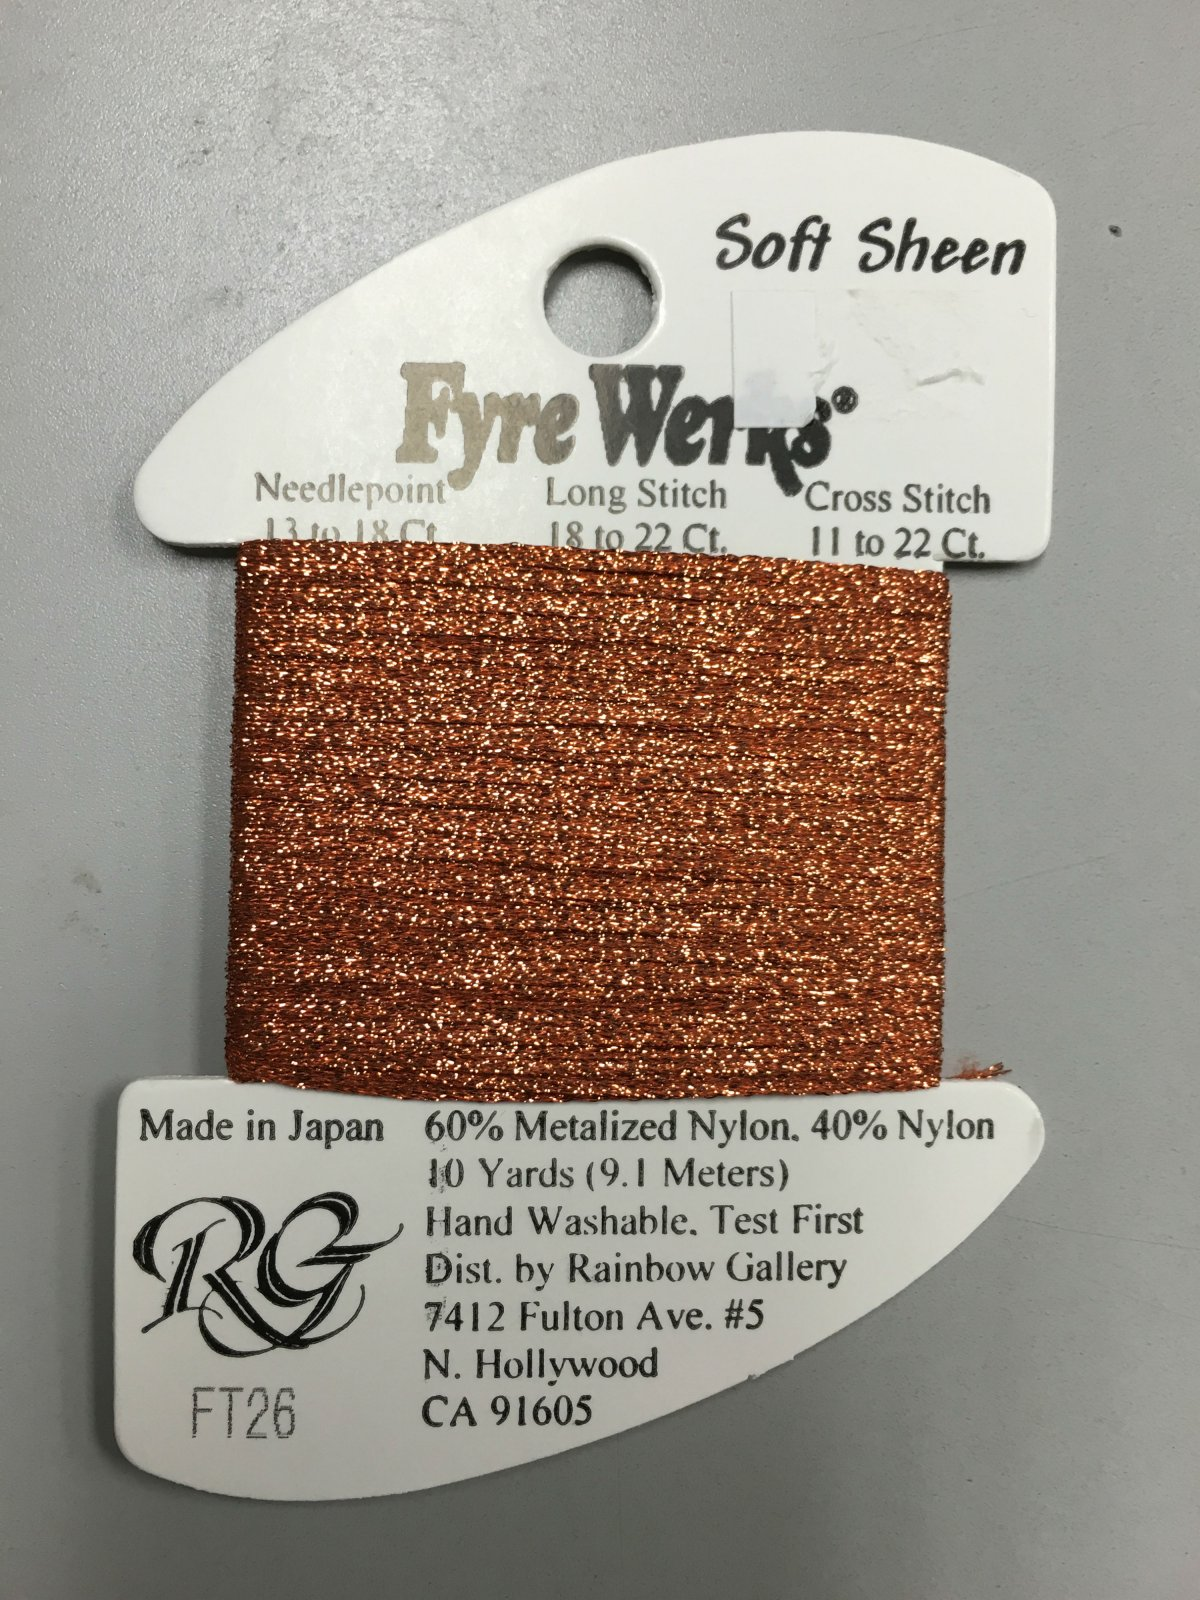 Fyre Werks Soft Sheen FT26